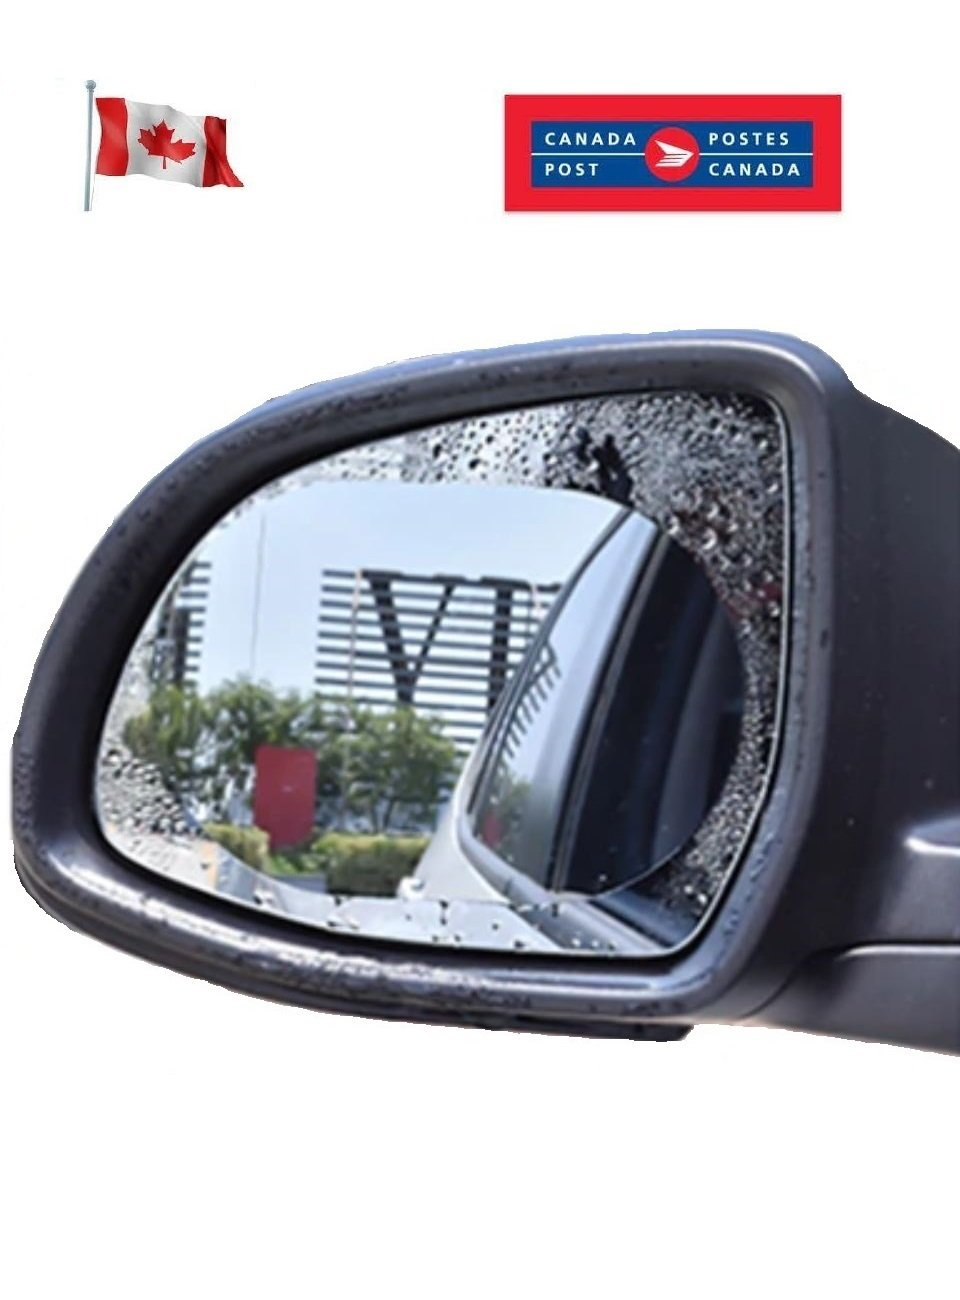 Medium Car Rearview Mirror Protective Film Anti Fog Decal Clear Rainproof Rear Sticker